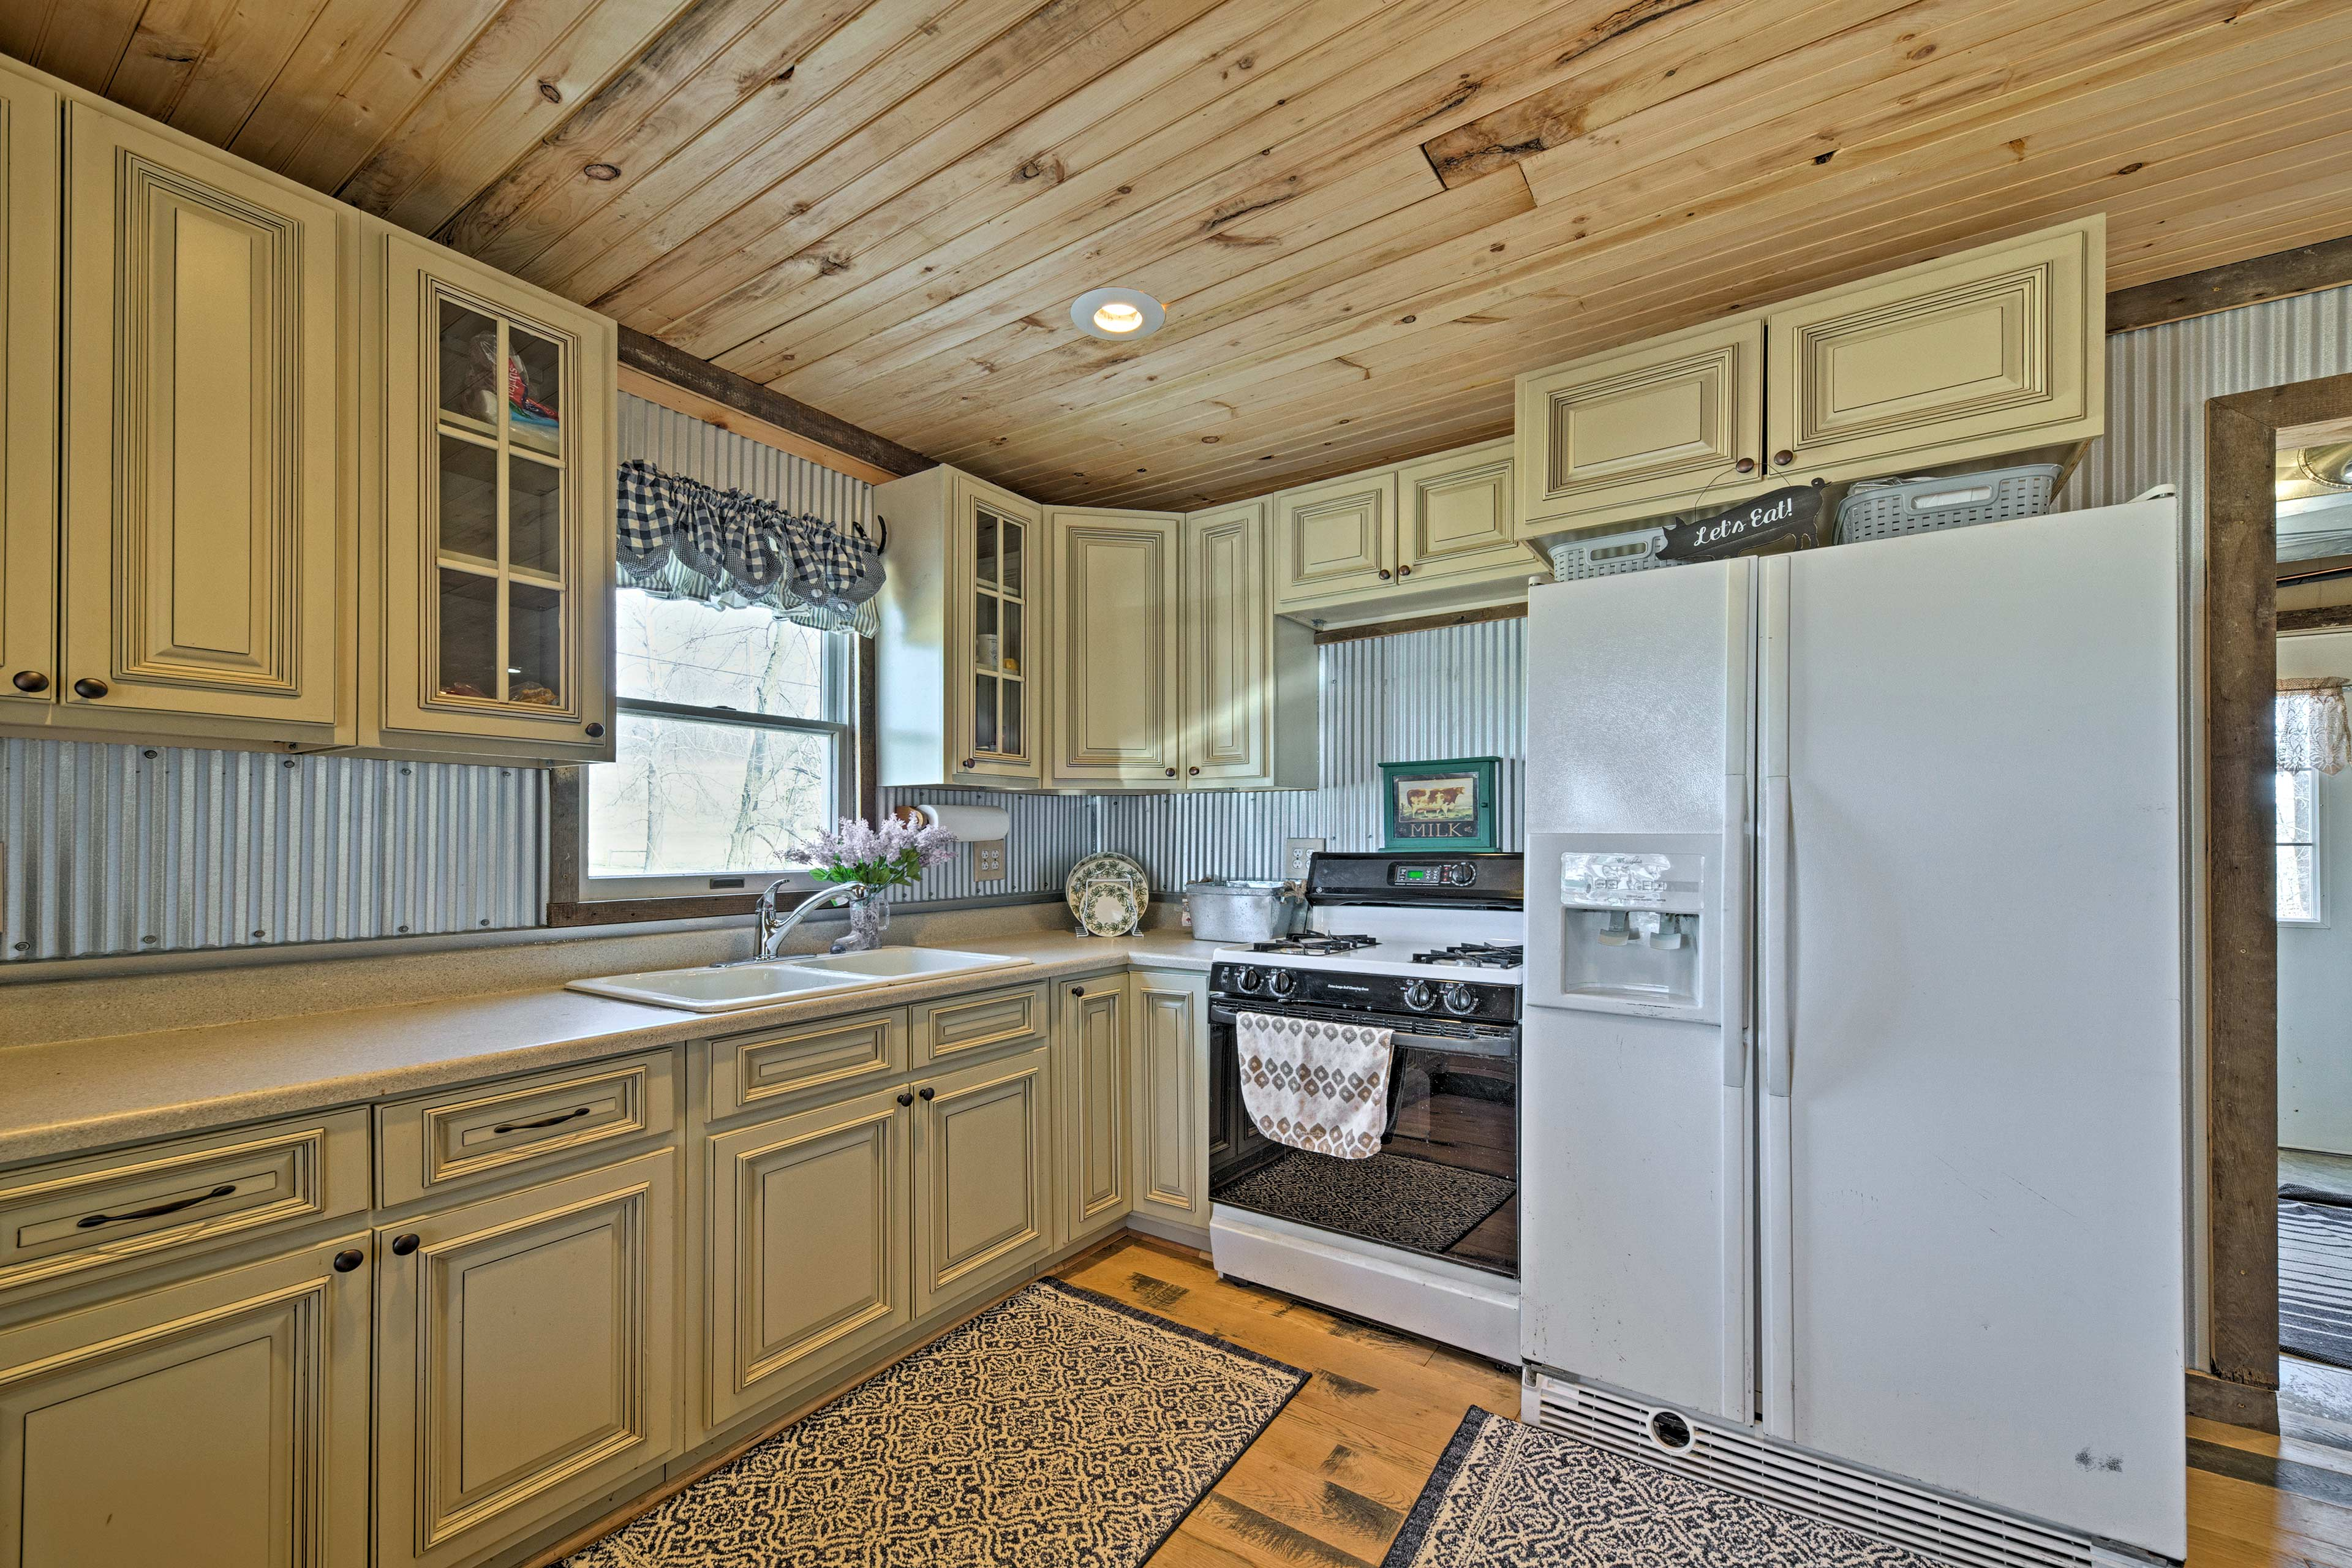 With modern appliances and ample counter space, cooking will be a breeze!